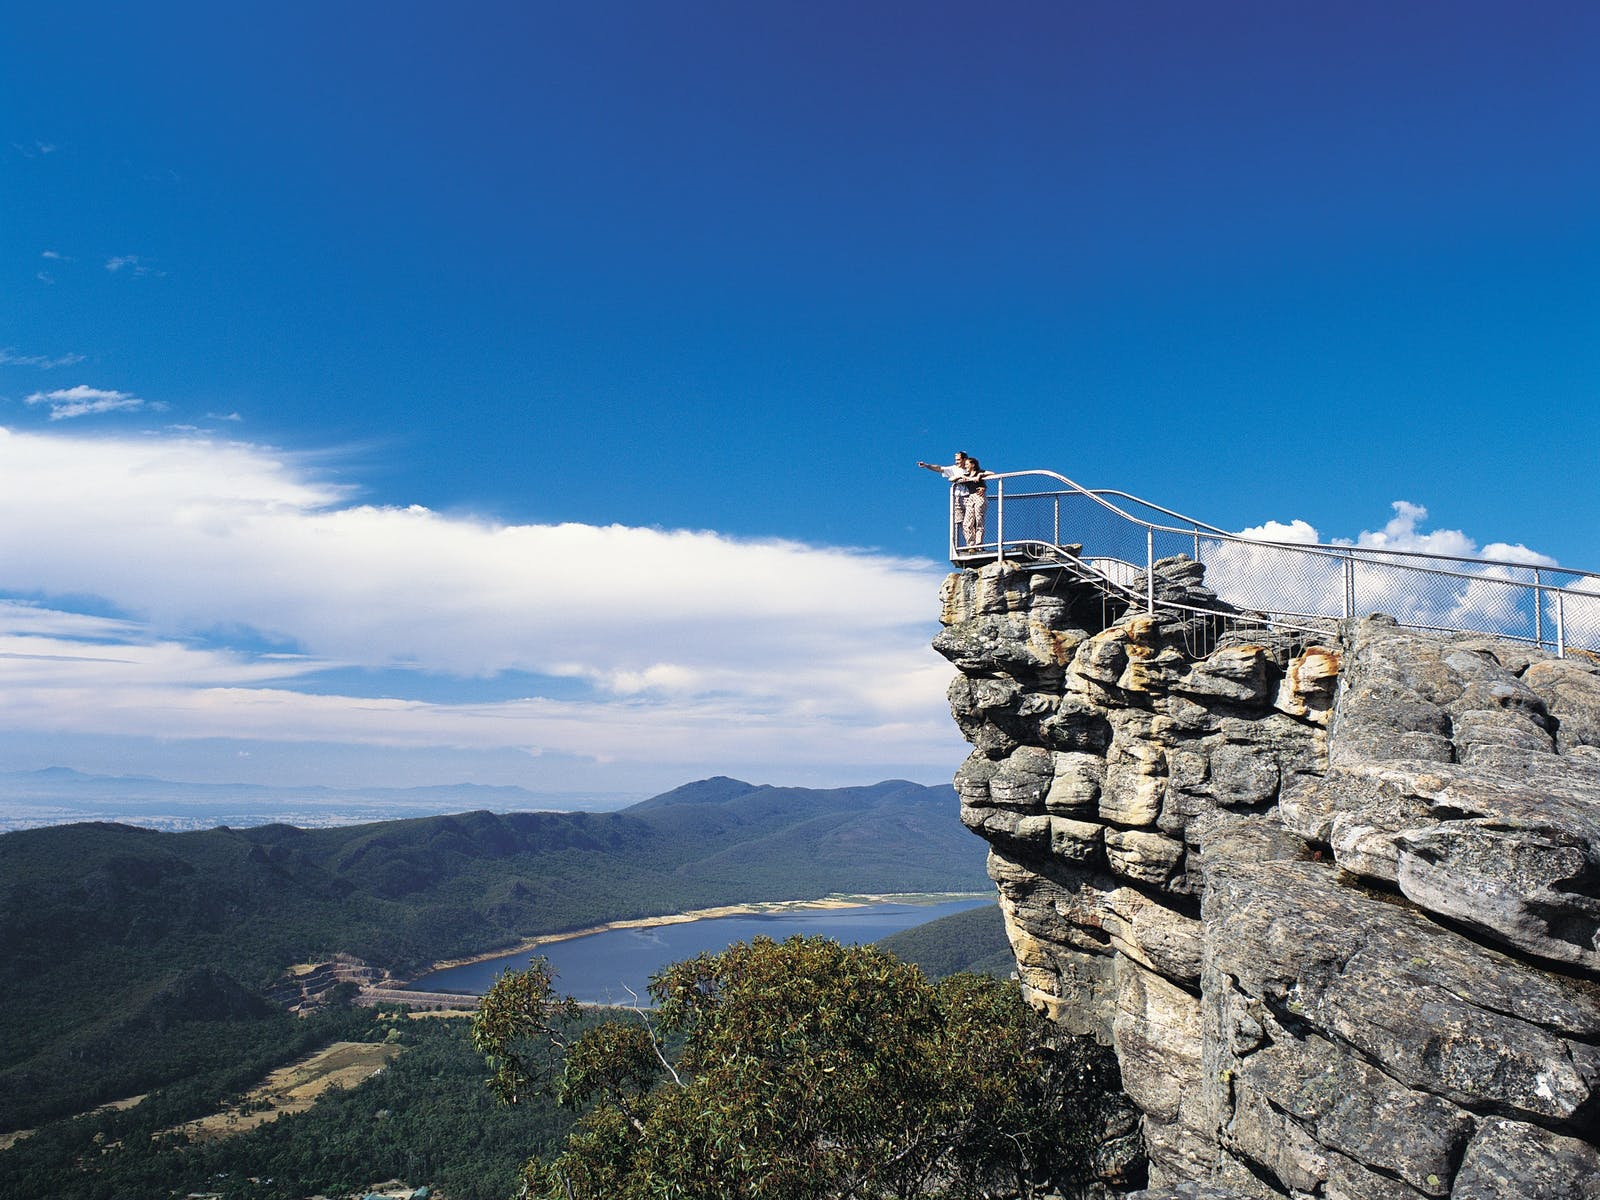 An annual camp is held at Halls Gap